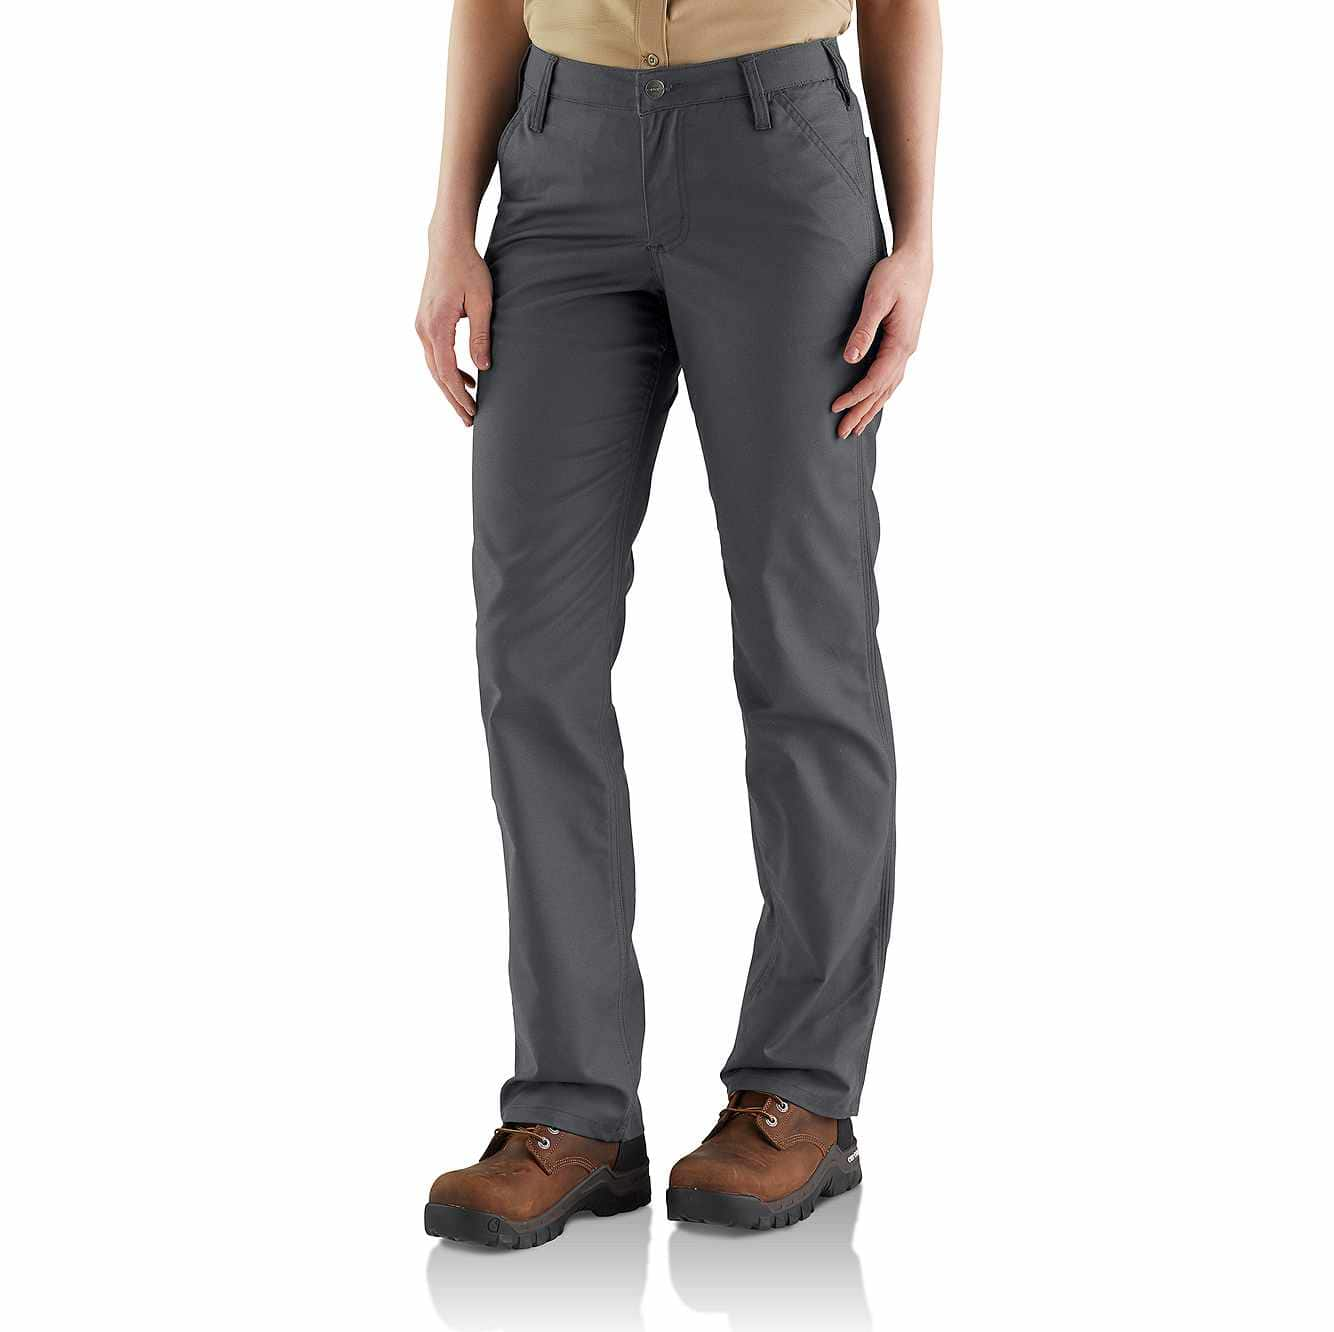 Picture of Rugged Professional™ Series Women's Original Fit Pant in Shadow